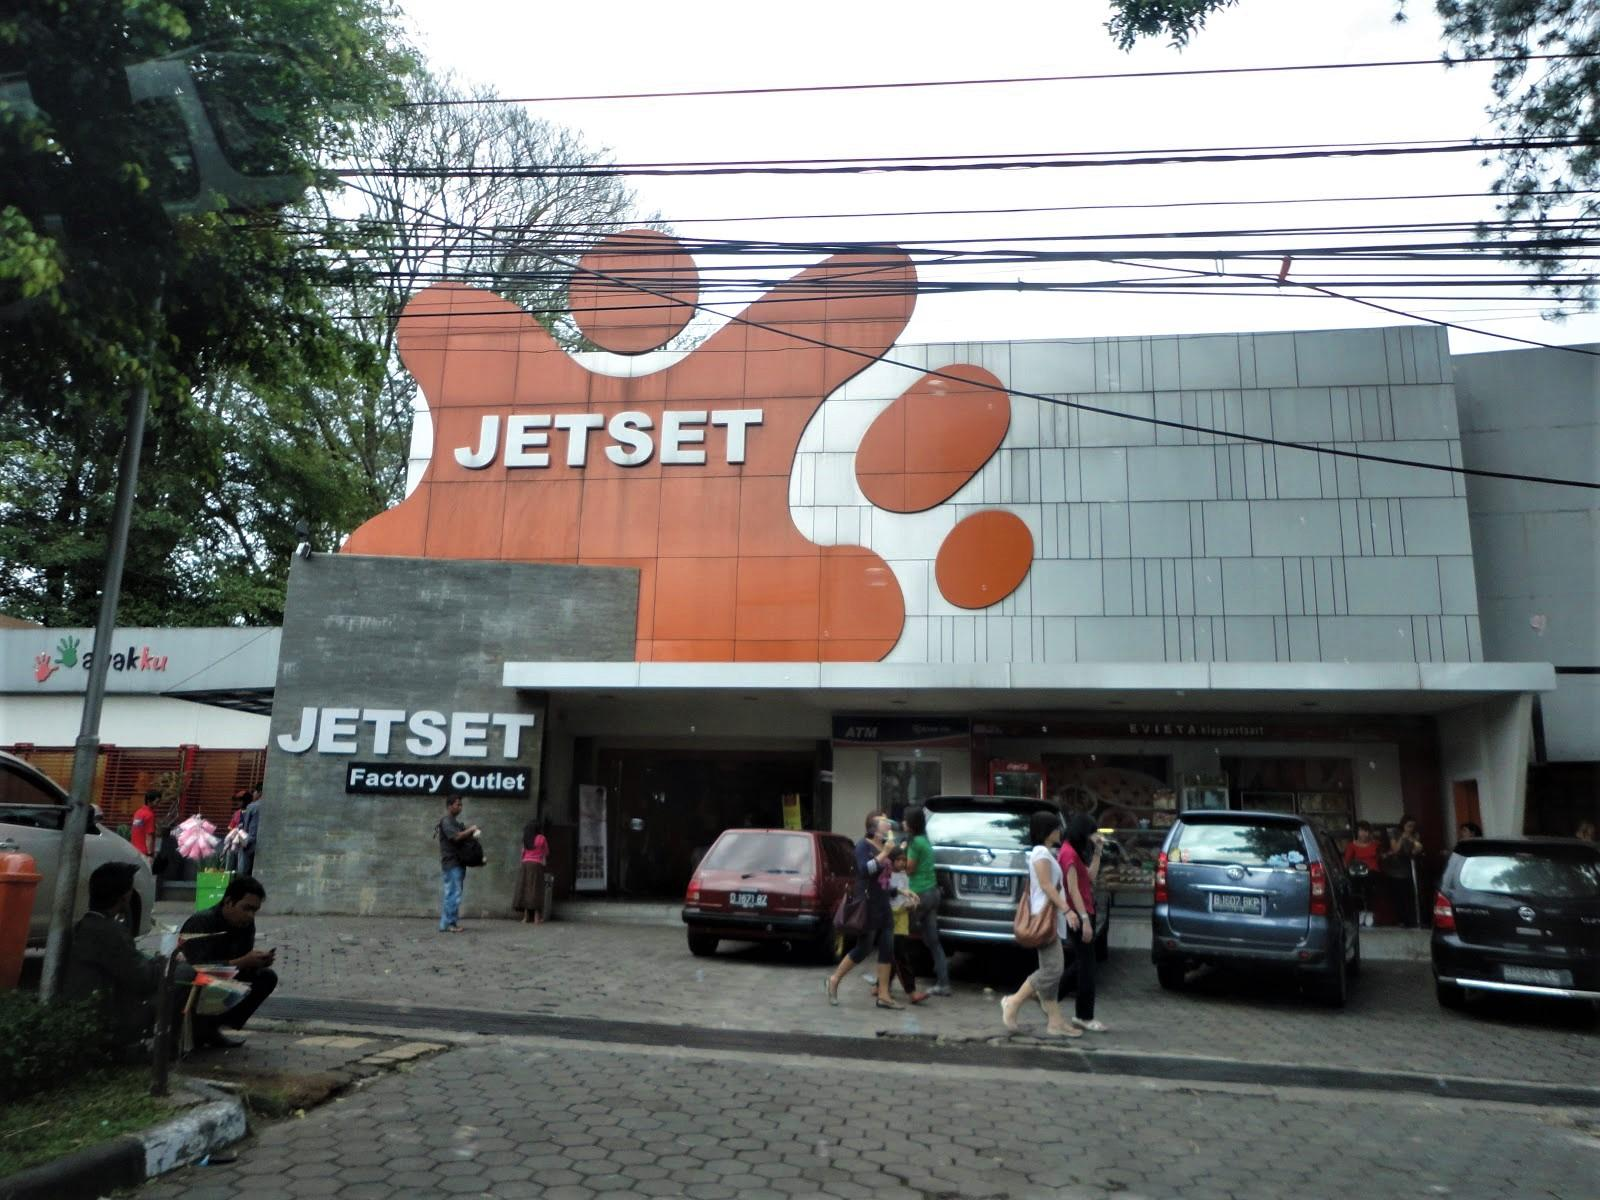 Jetset Factory Outlet